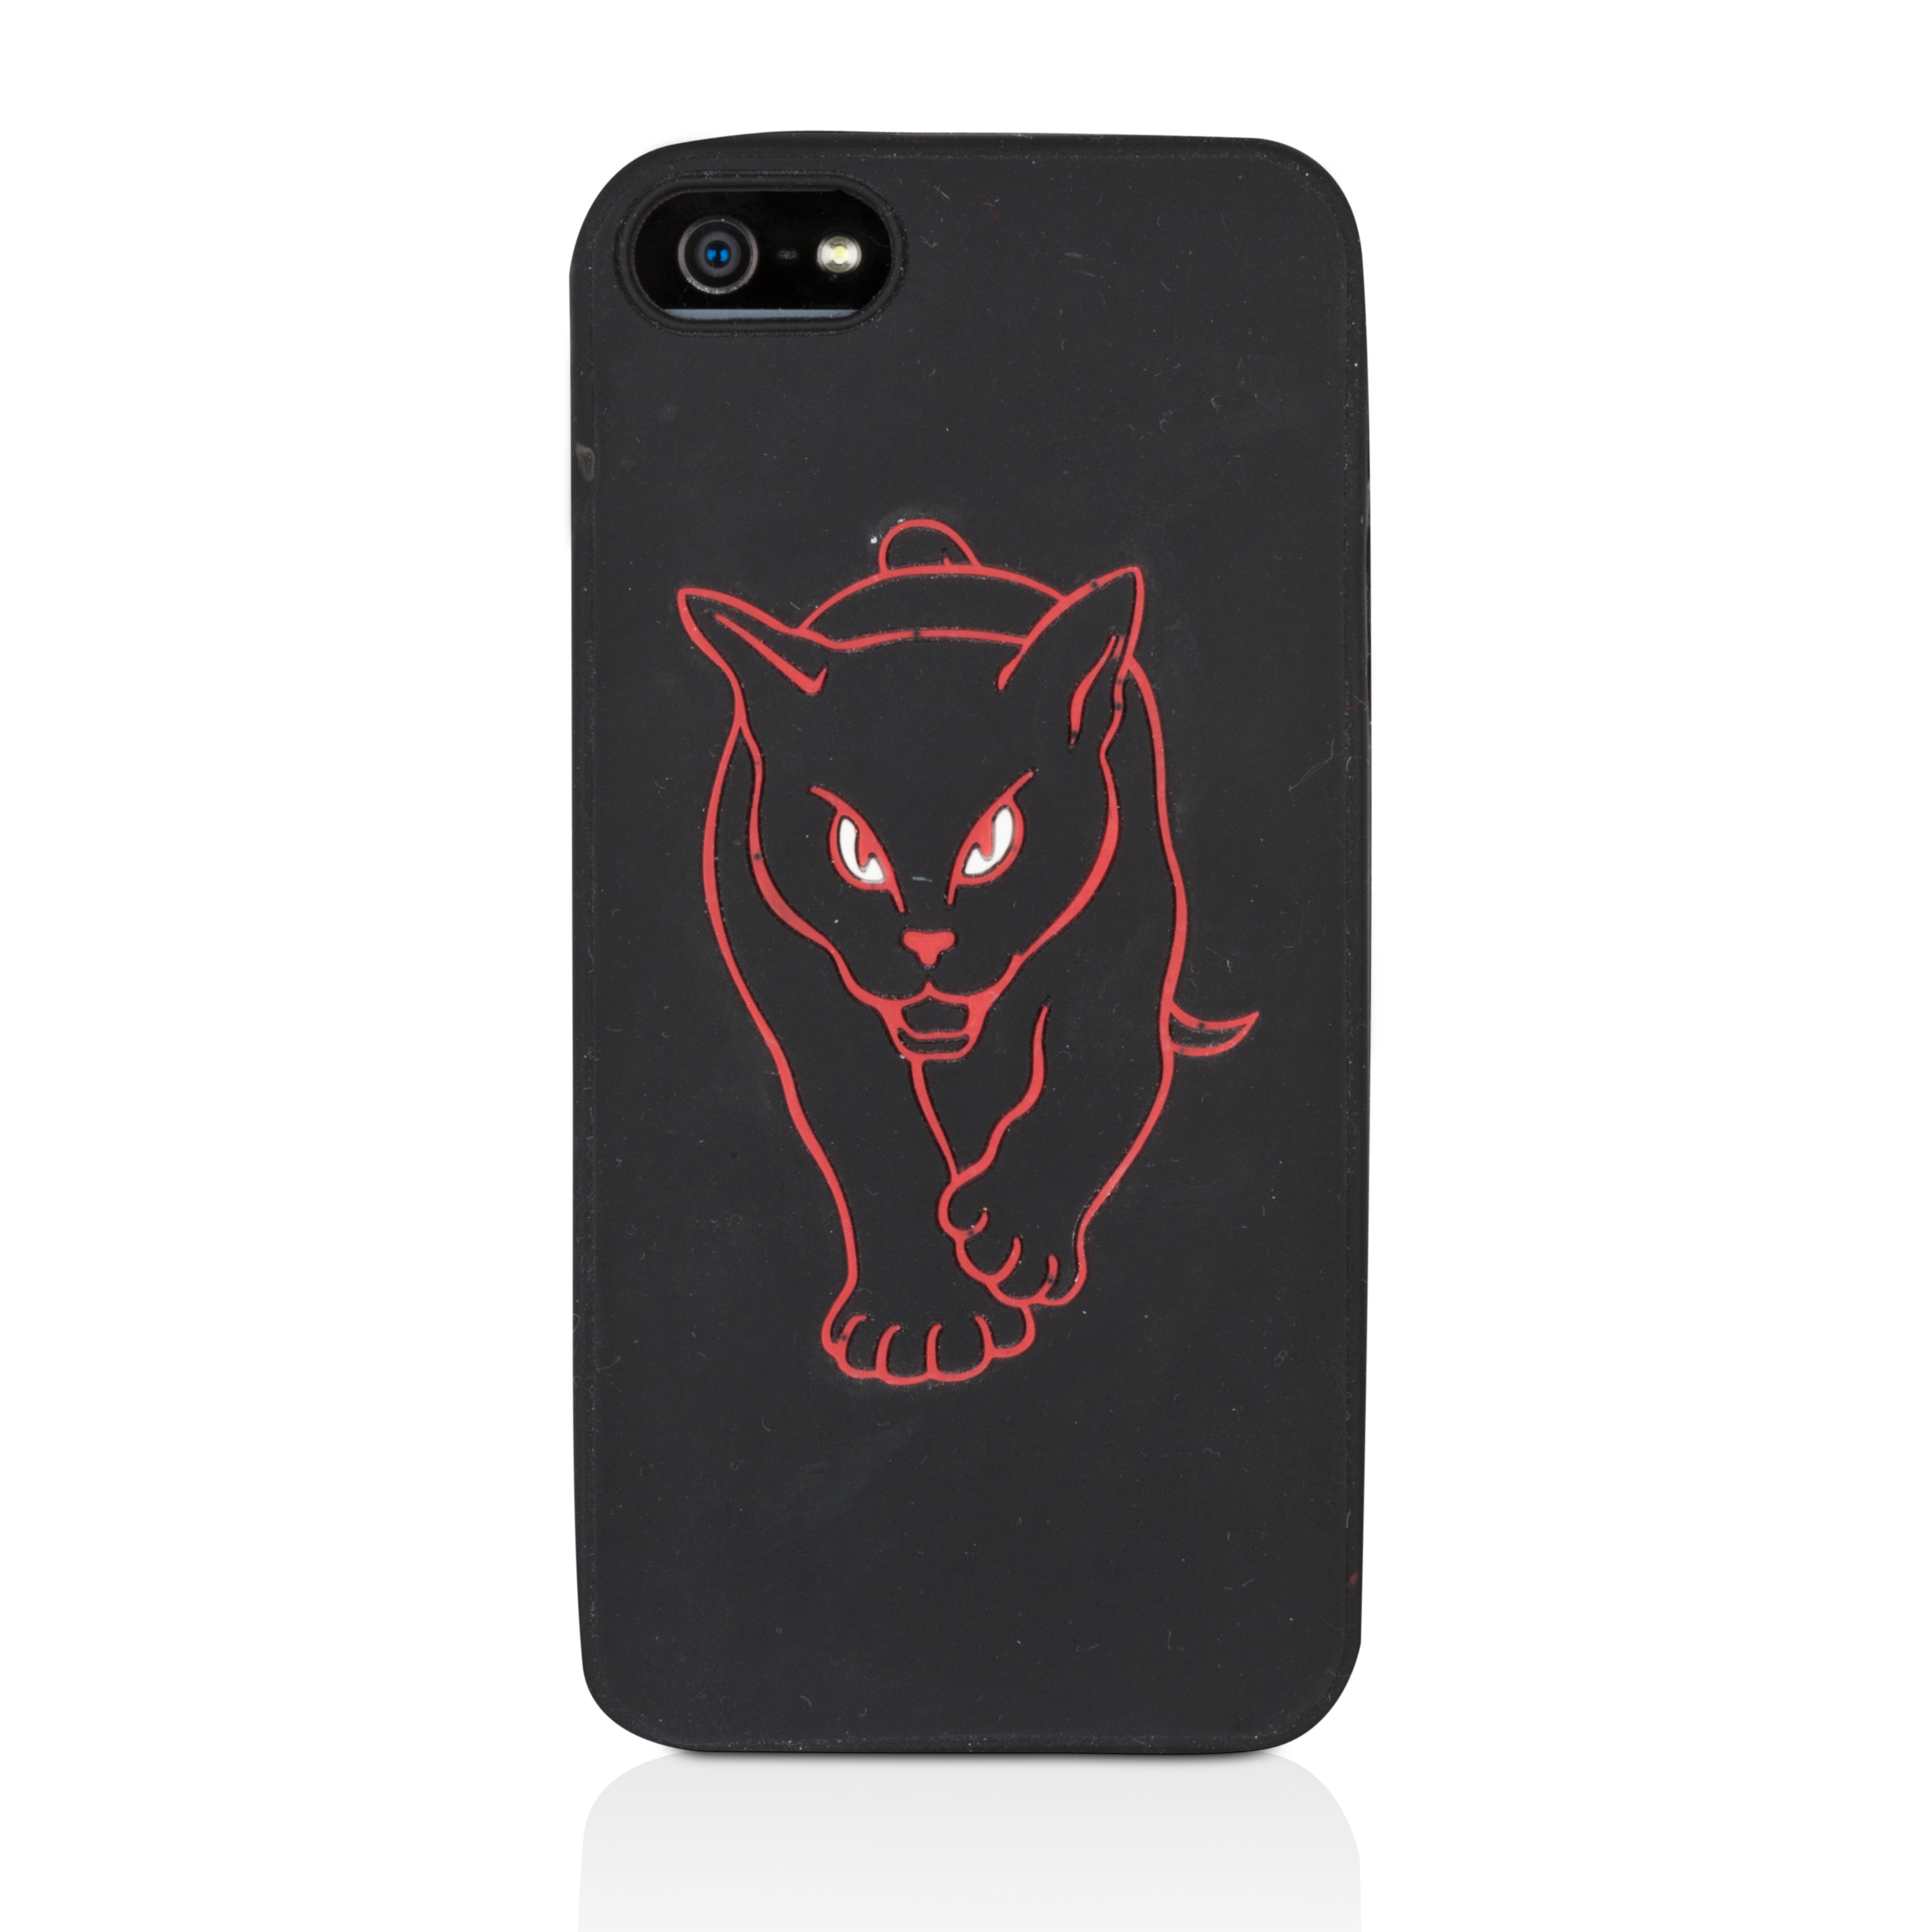 Sunderland Black Cat iphone 5th Generation Silicon Skin